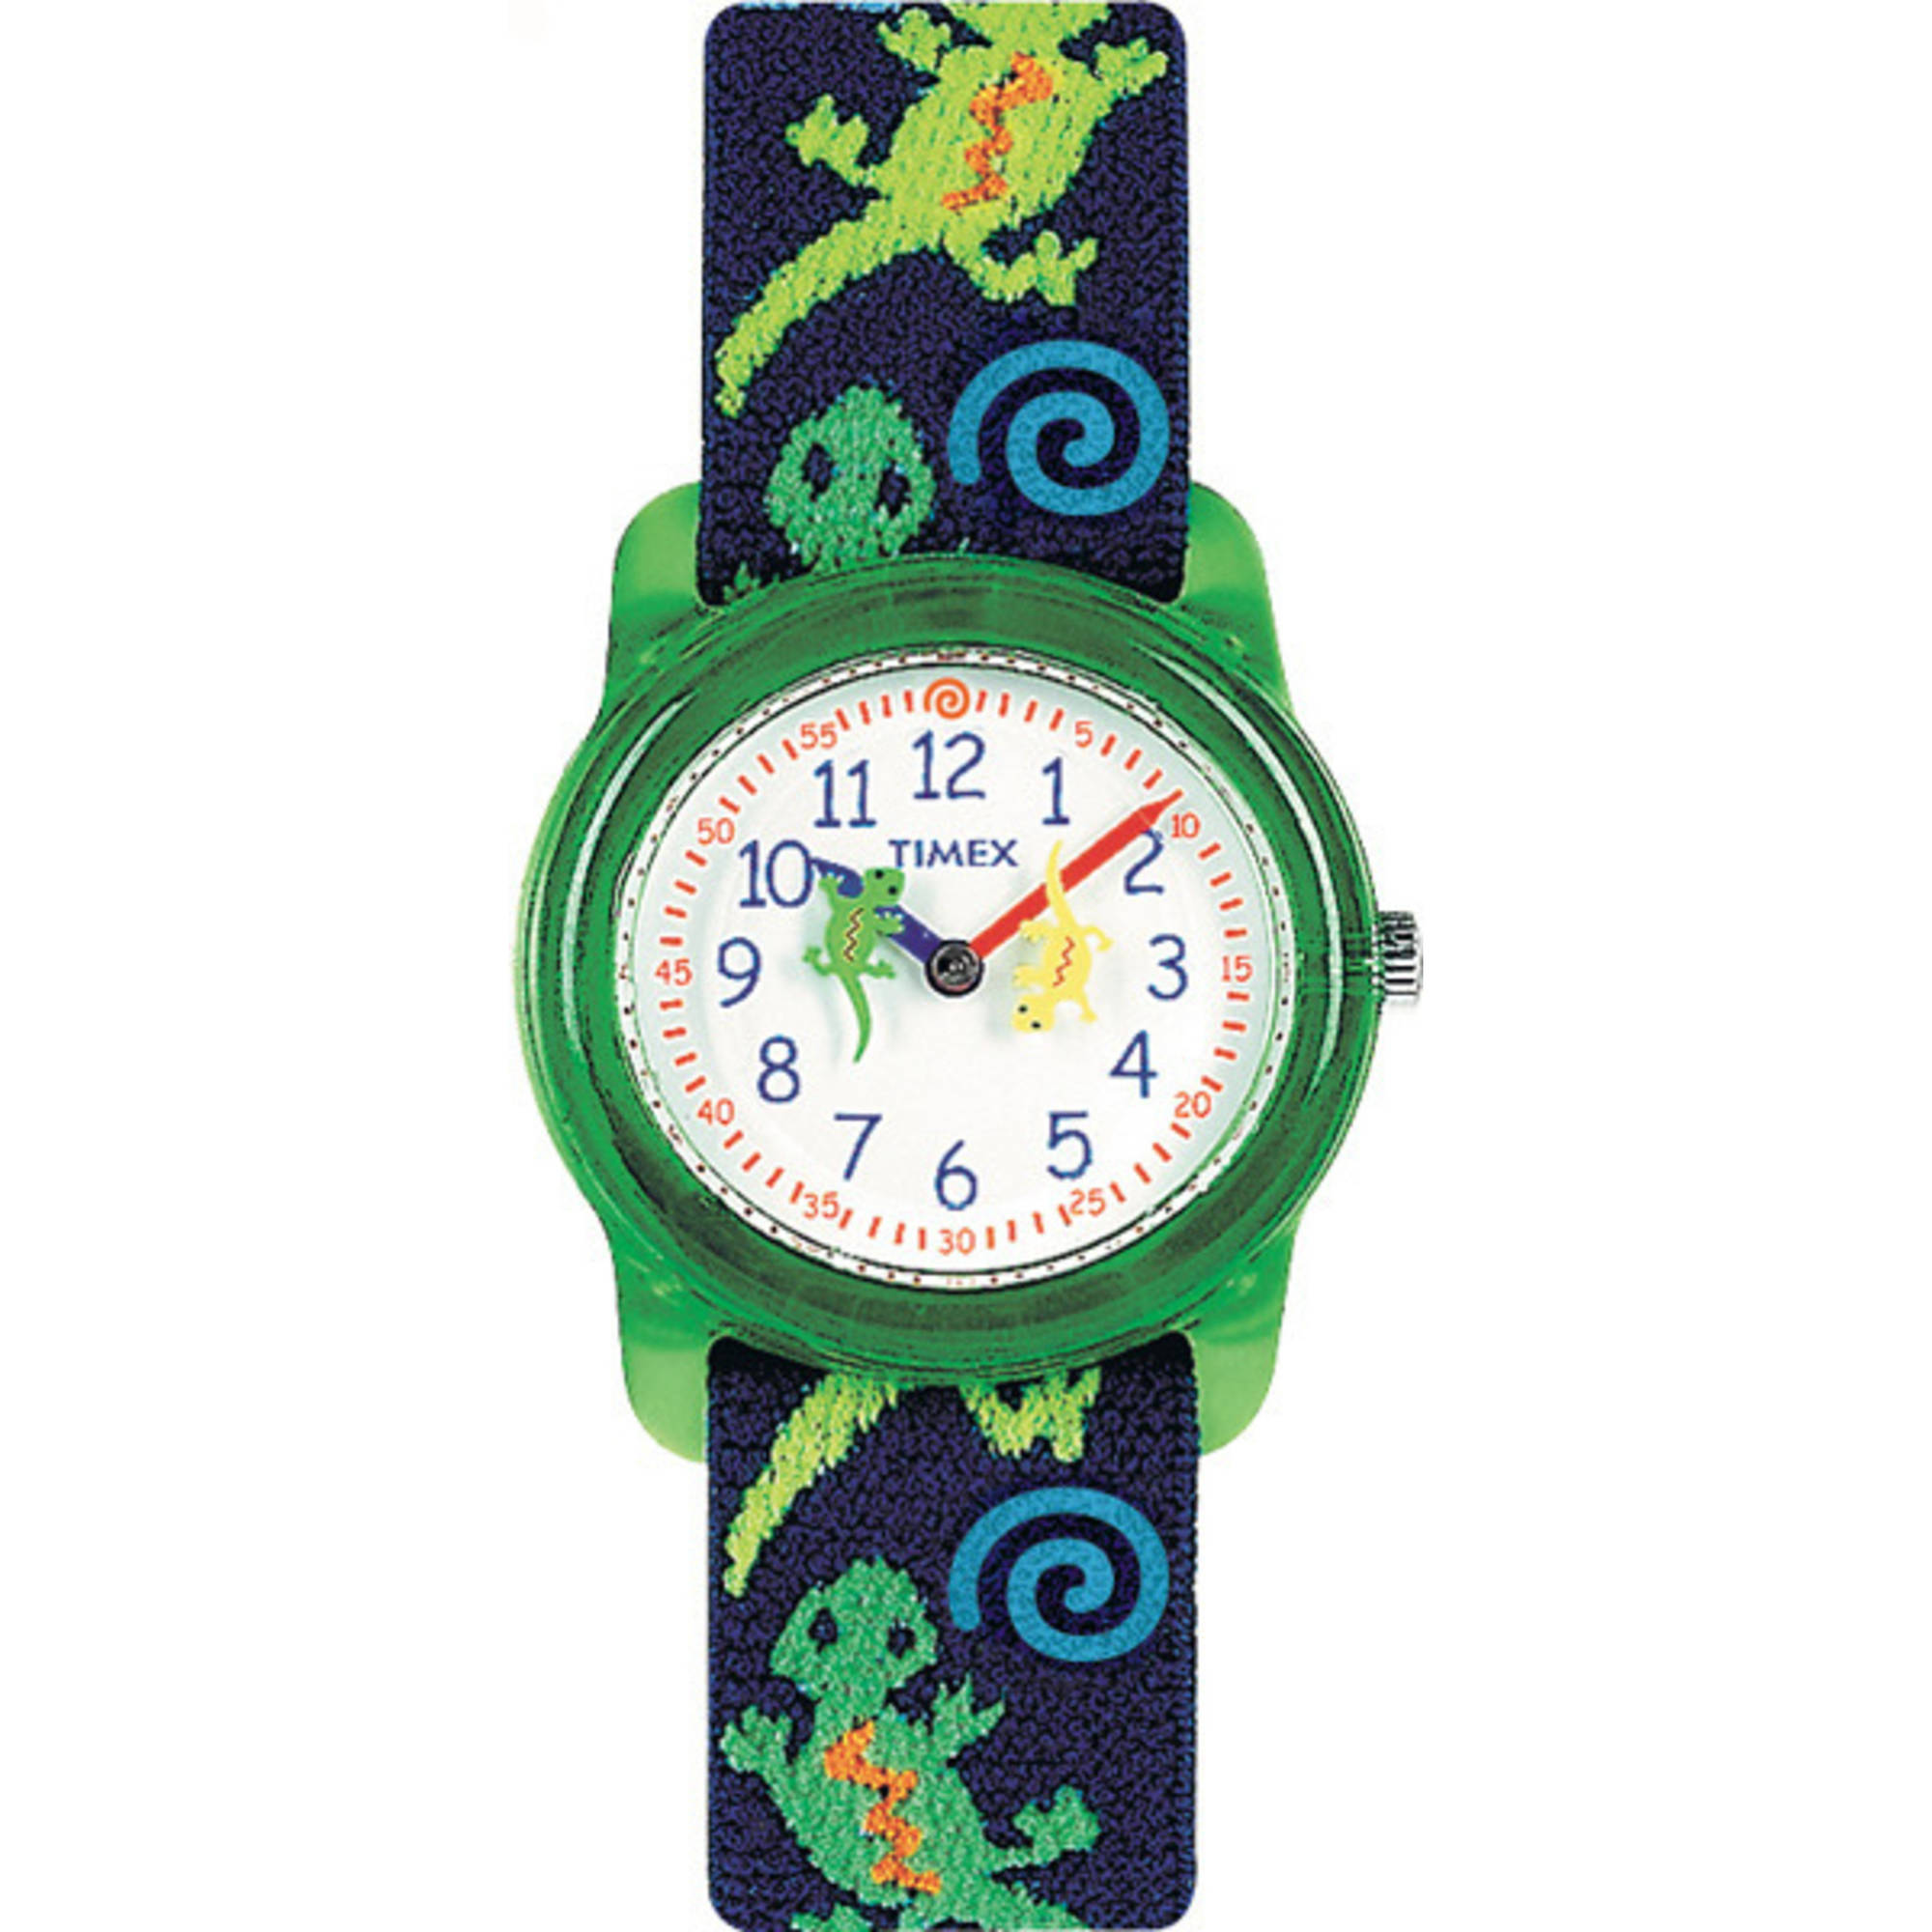 Timex Kids' Green Gecko Analog Watch, Elastic Fabric Strap